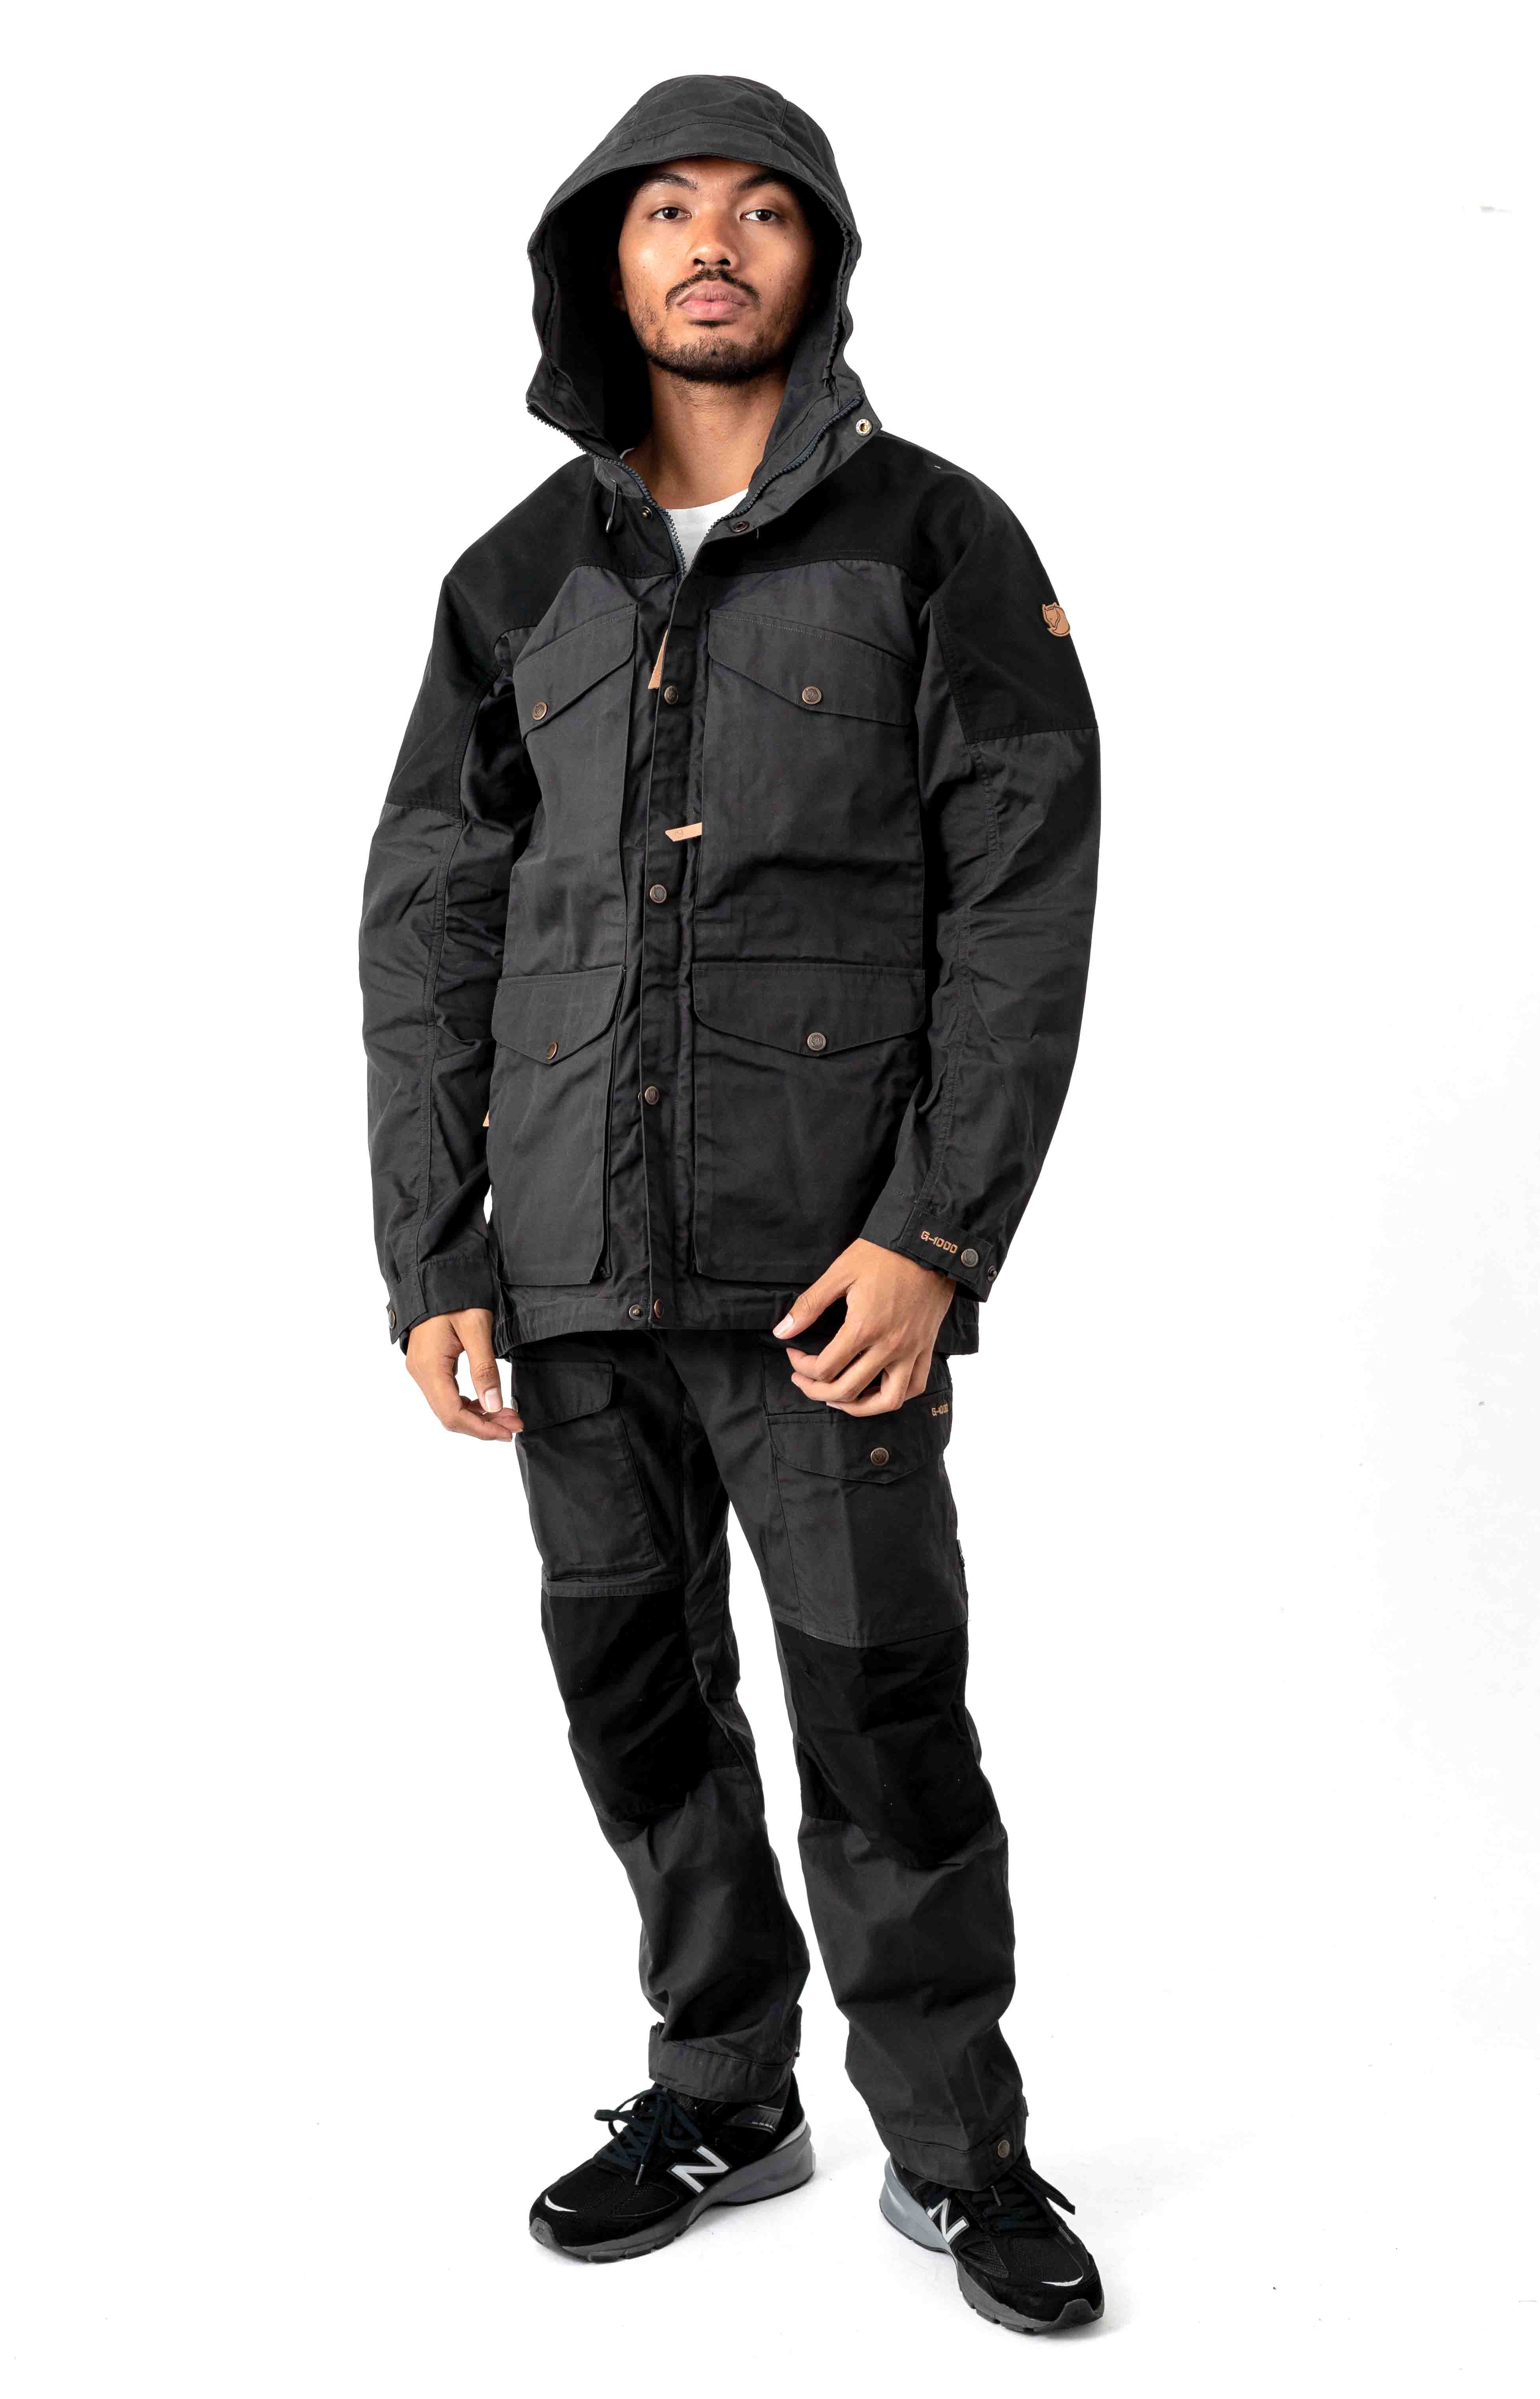 Vidda Pro Jacket - Dark Grey/Black 5